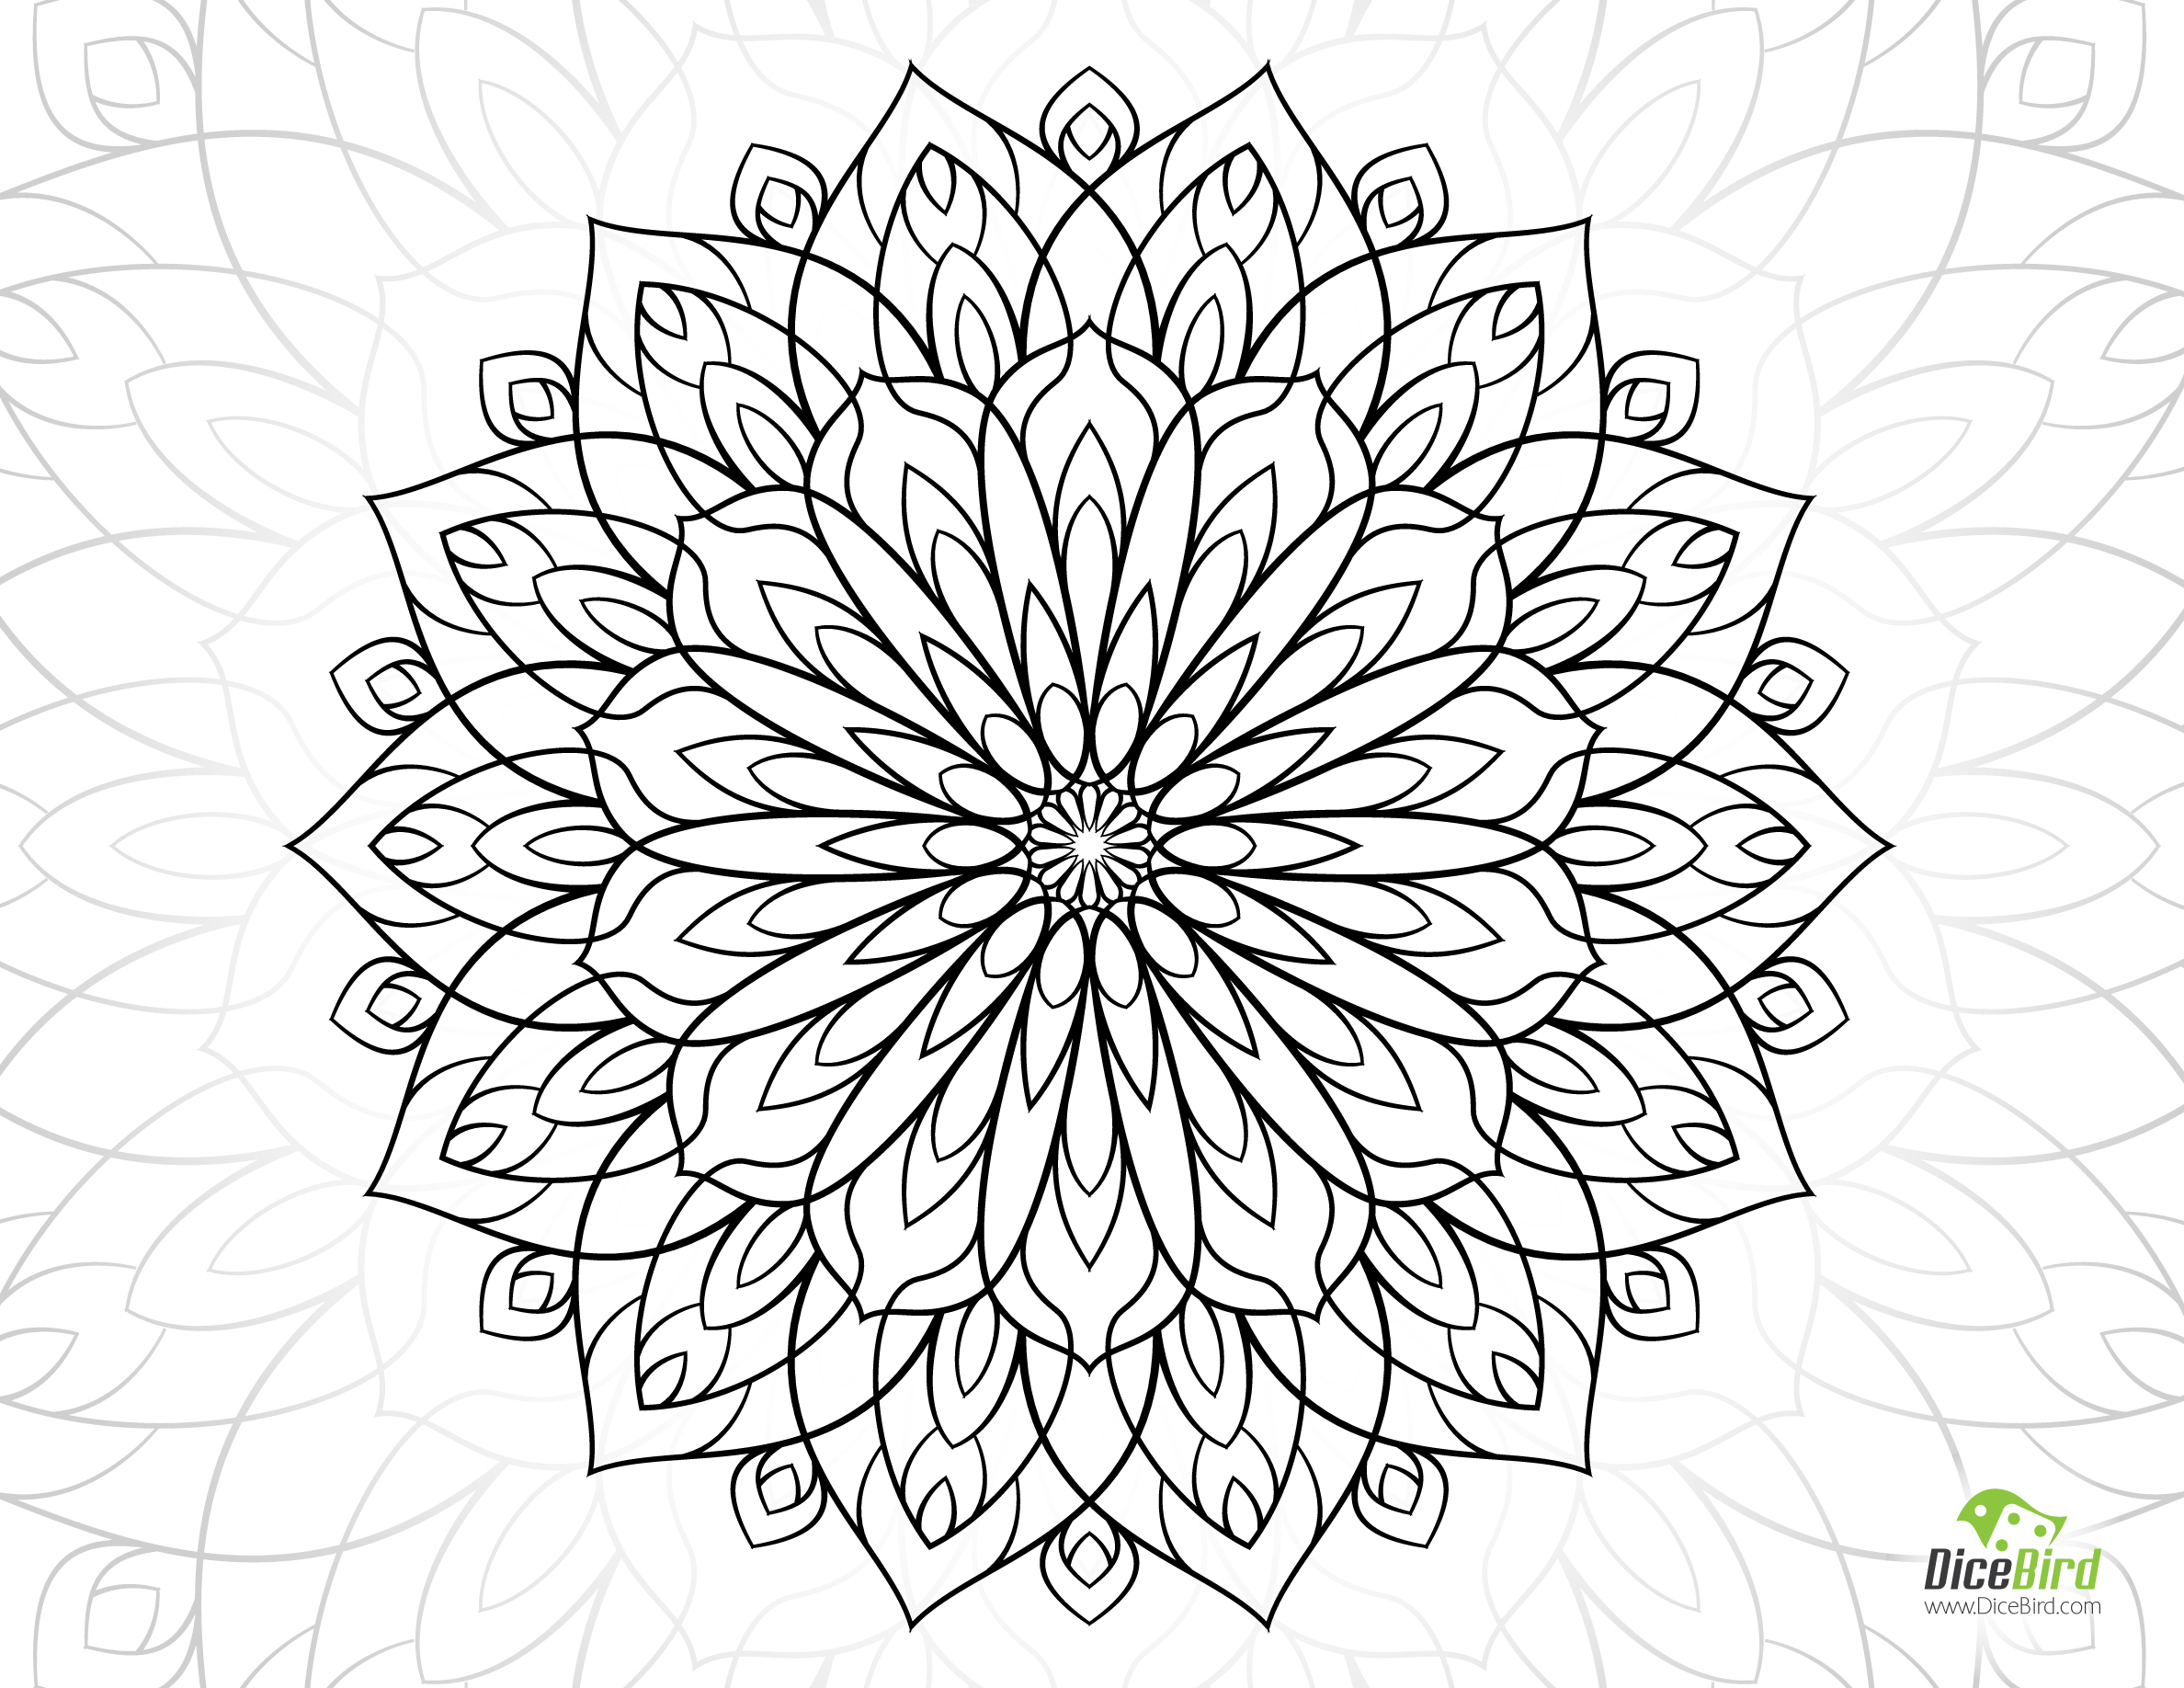 2376x1836 Flower Adult Coloring Pages Preschool To Cure Draw Image